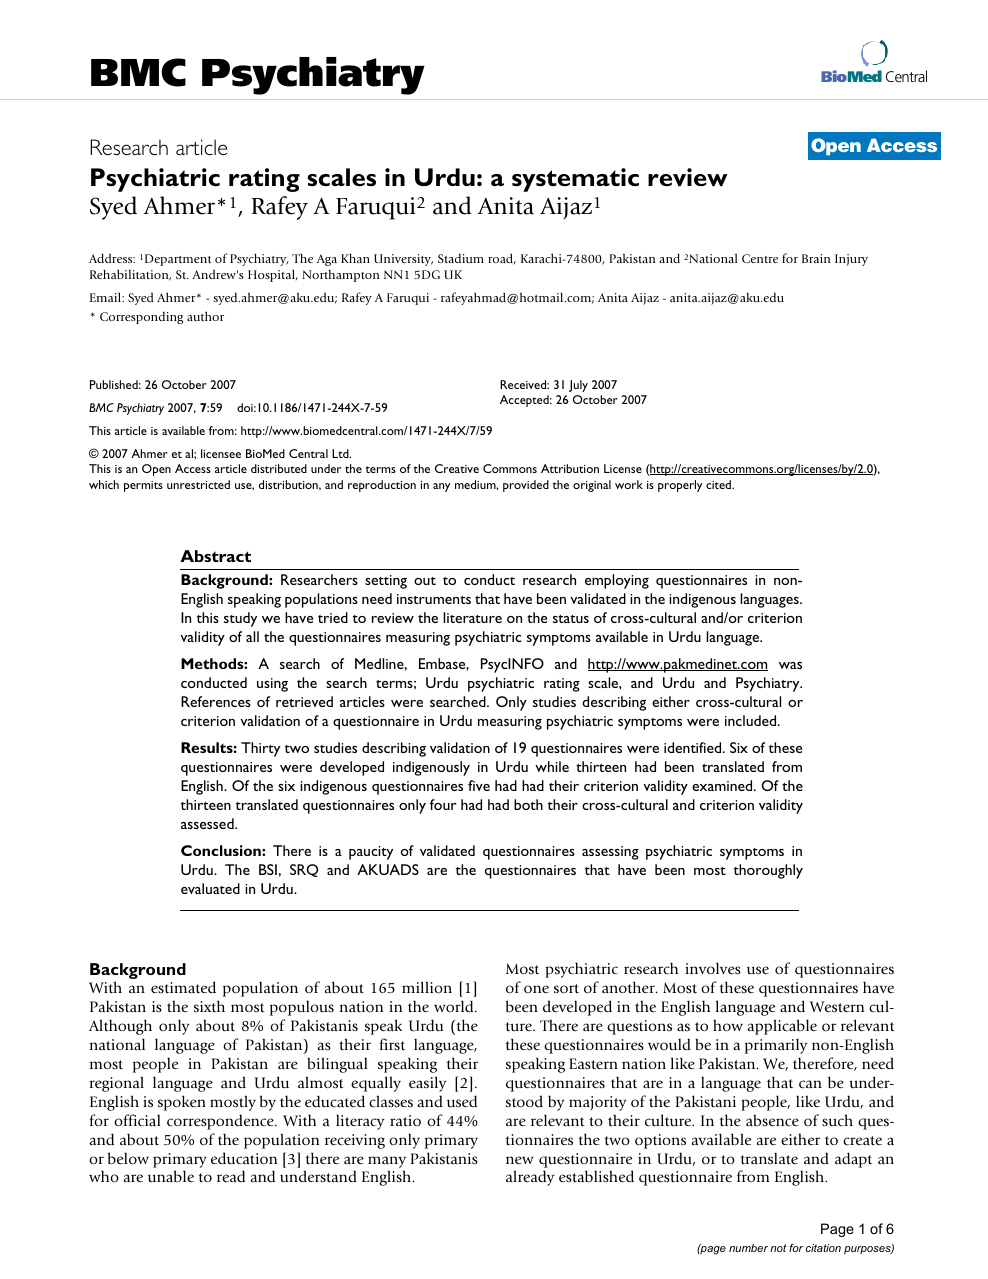 Psychiatric rating scales in Urdu: a systematic review